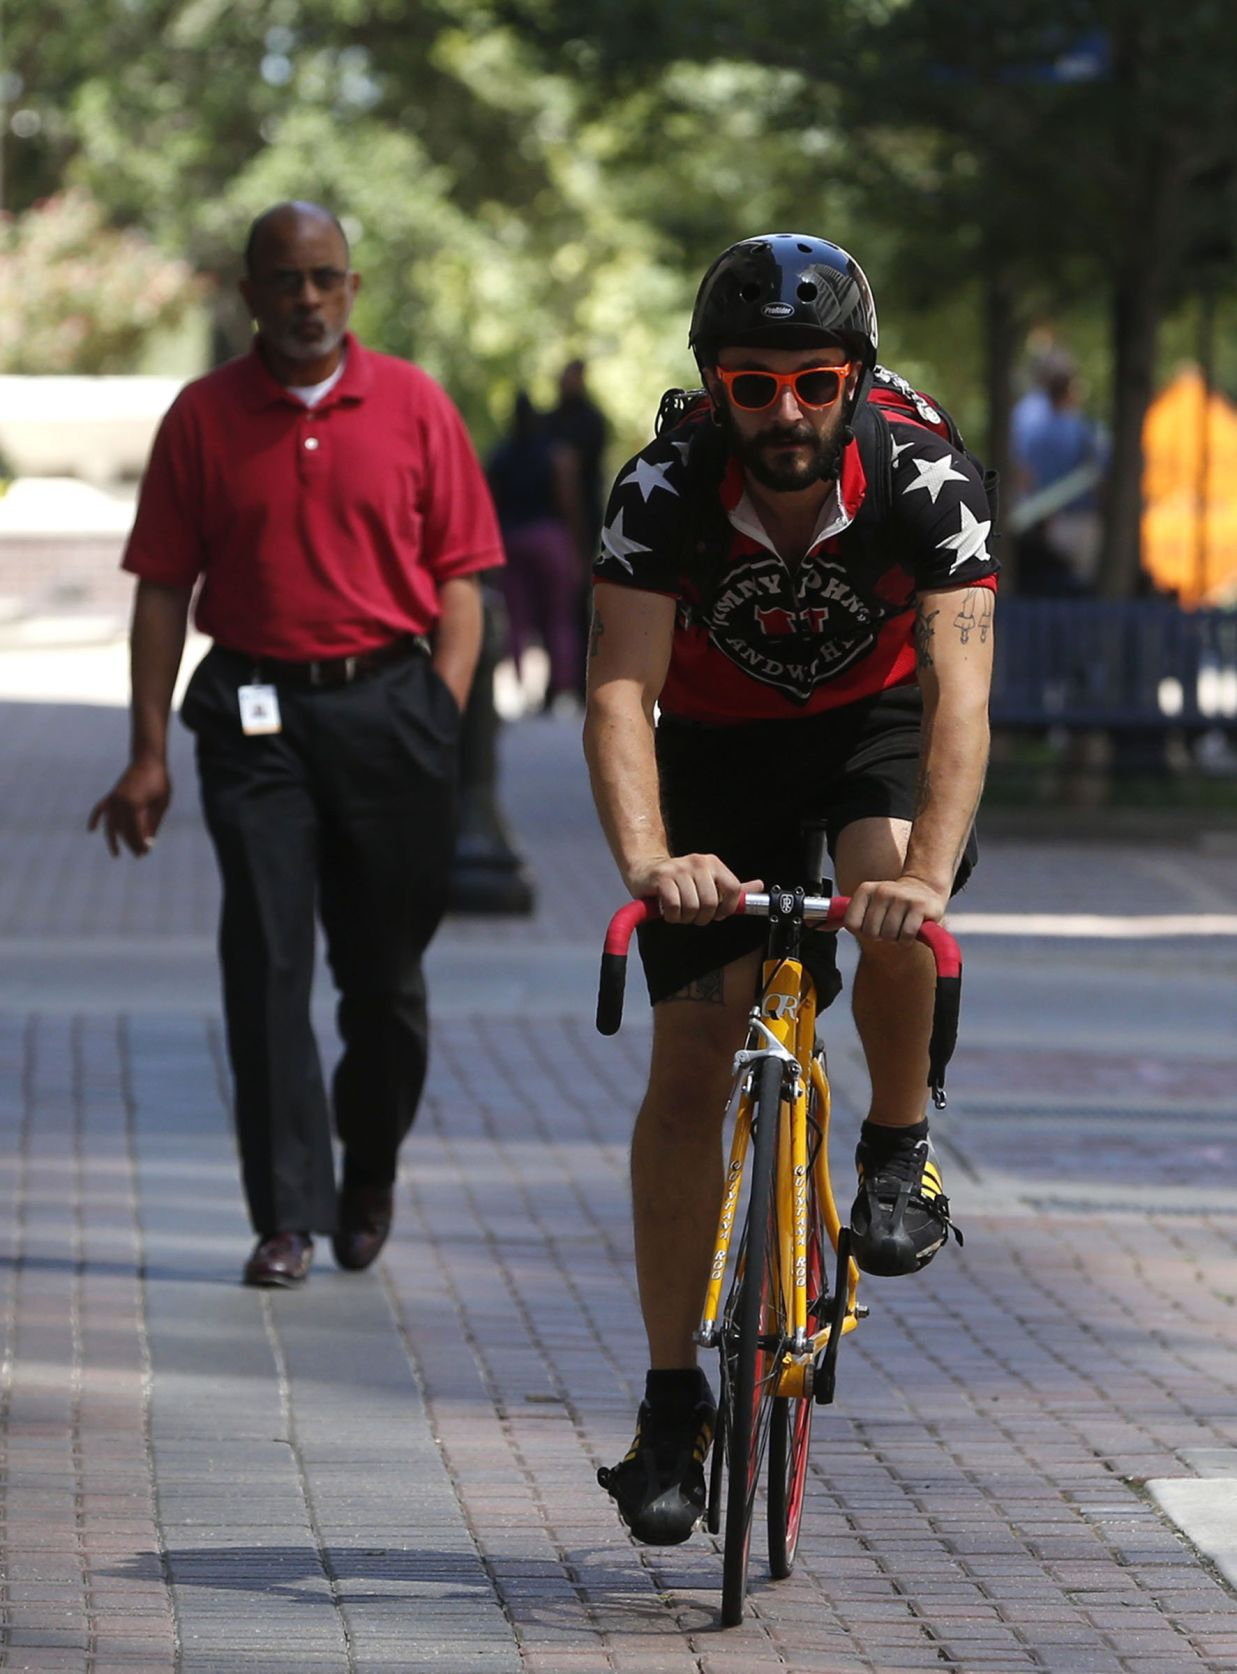 Freaky Fast': Jimmy John's bike drivers meet challenge of pedaling ...